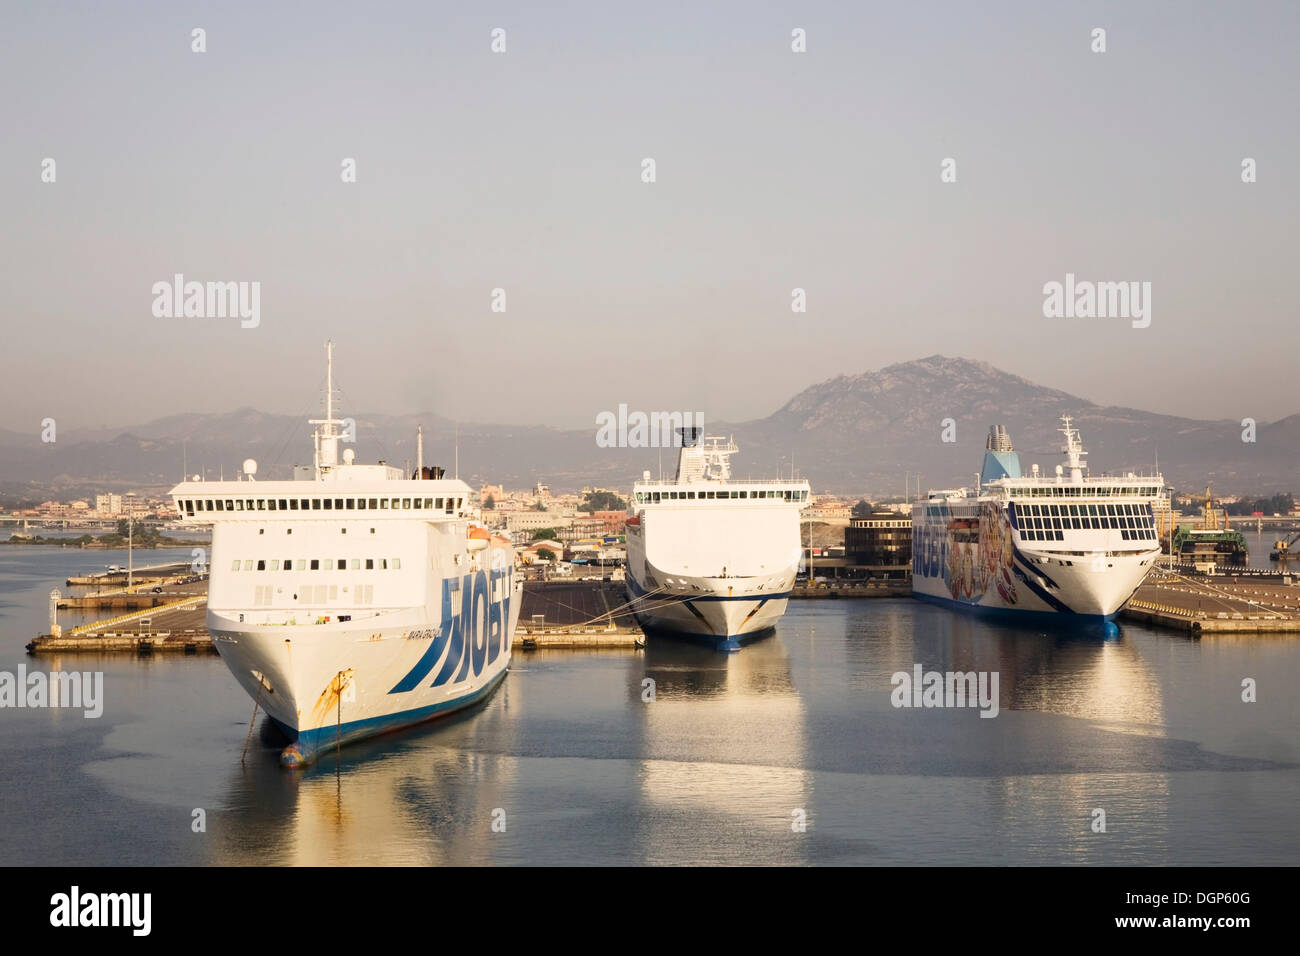 Car ferries in the port of Olbia, Sardinia, Italy, Europe - Stock Image